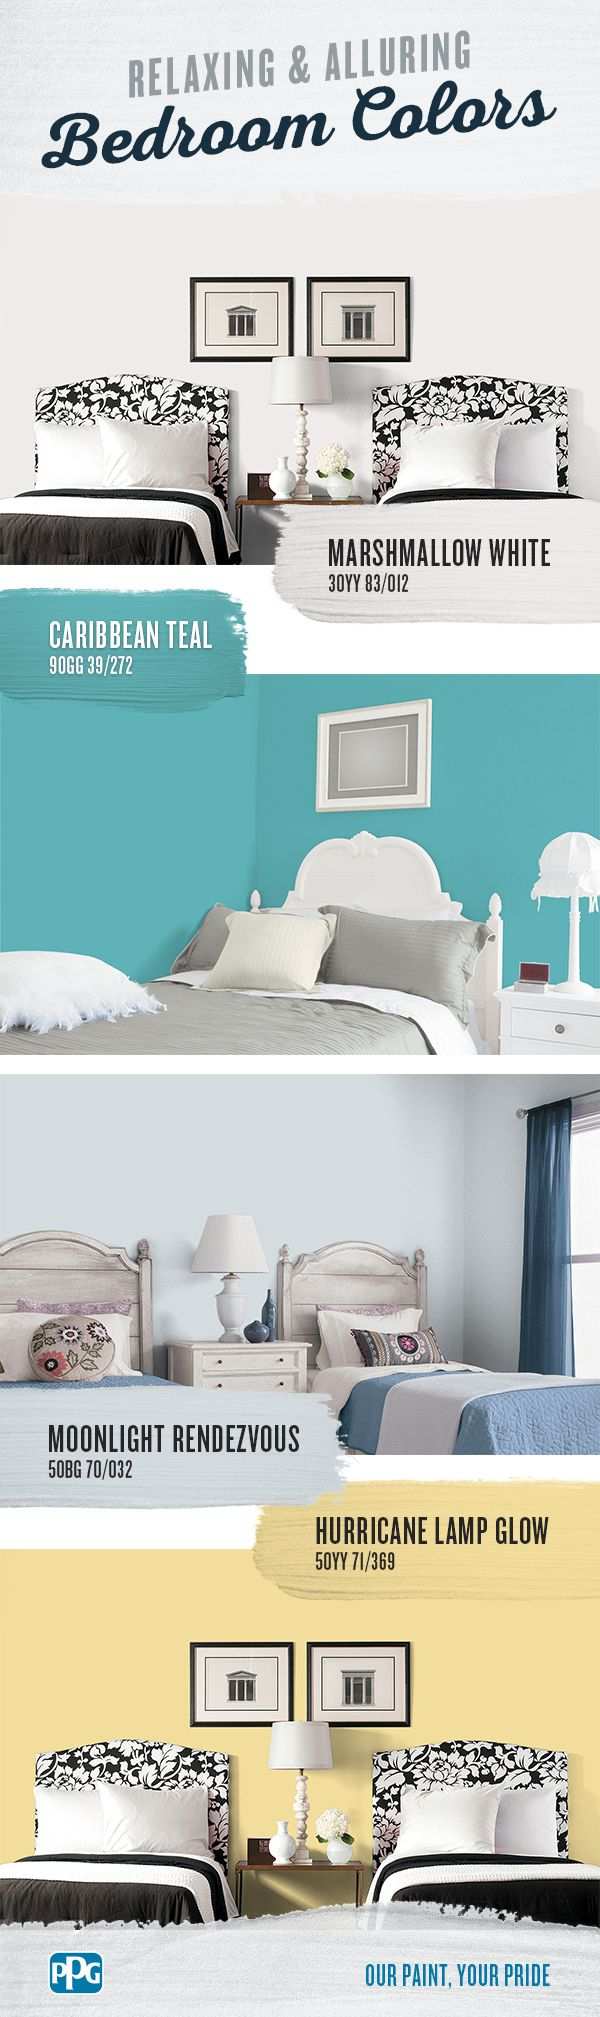 bedroom color guide Relaxing and Alluring Bedroom Colors | A good guide for bedroom  2017 X 600